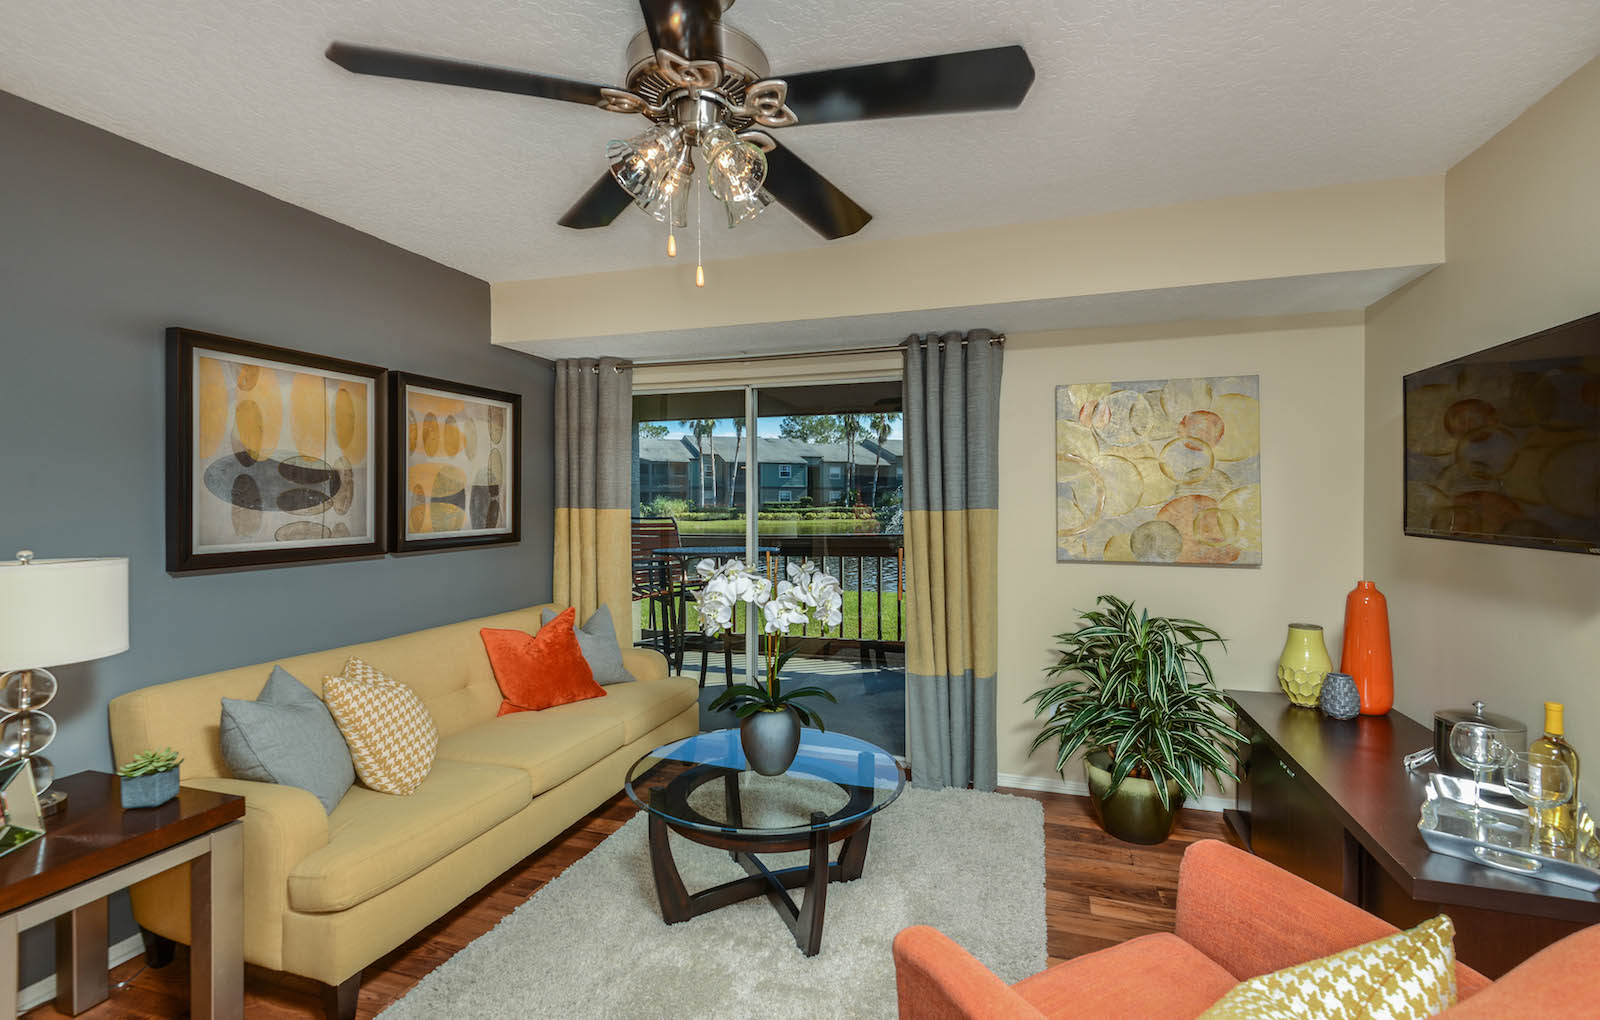 The Savannahs At James Landing Apartments In Melbourne, FL 32935